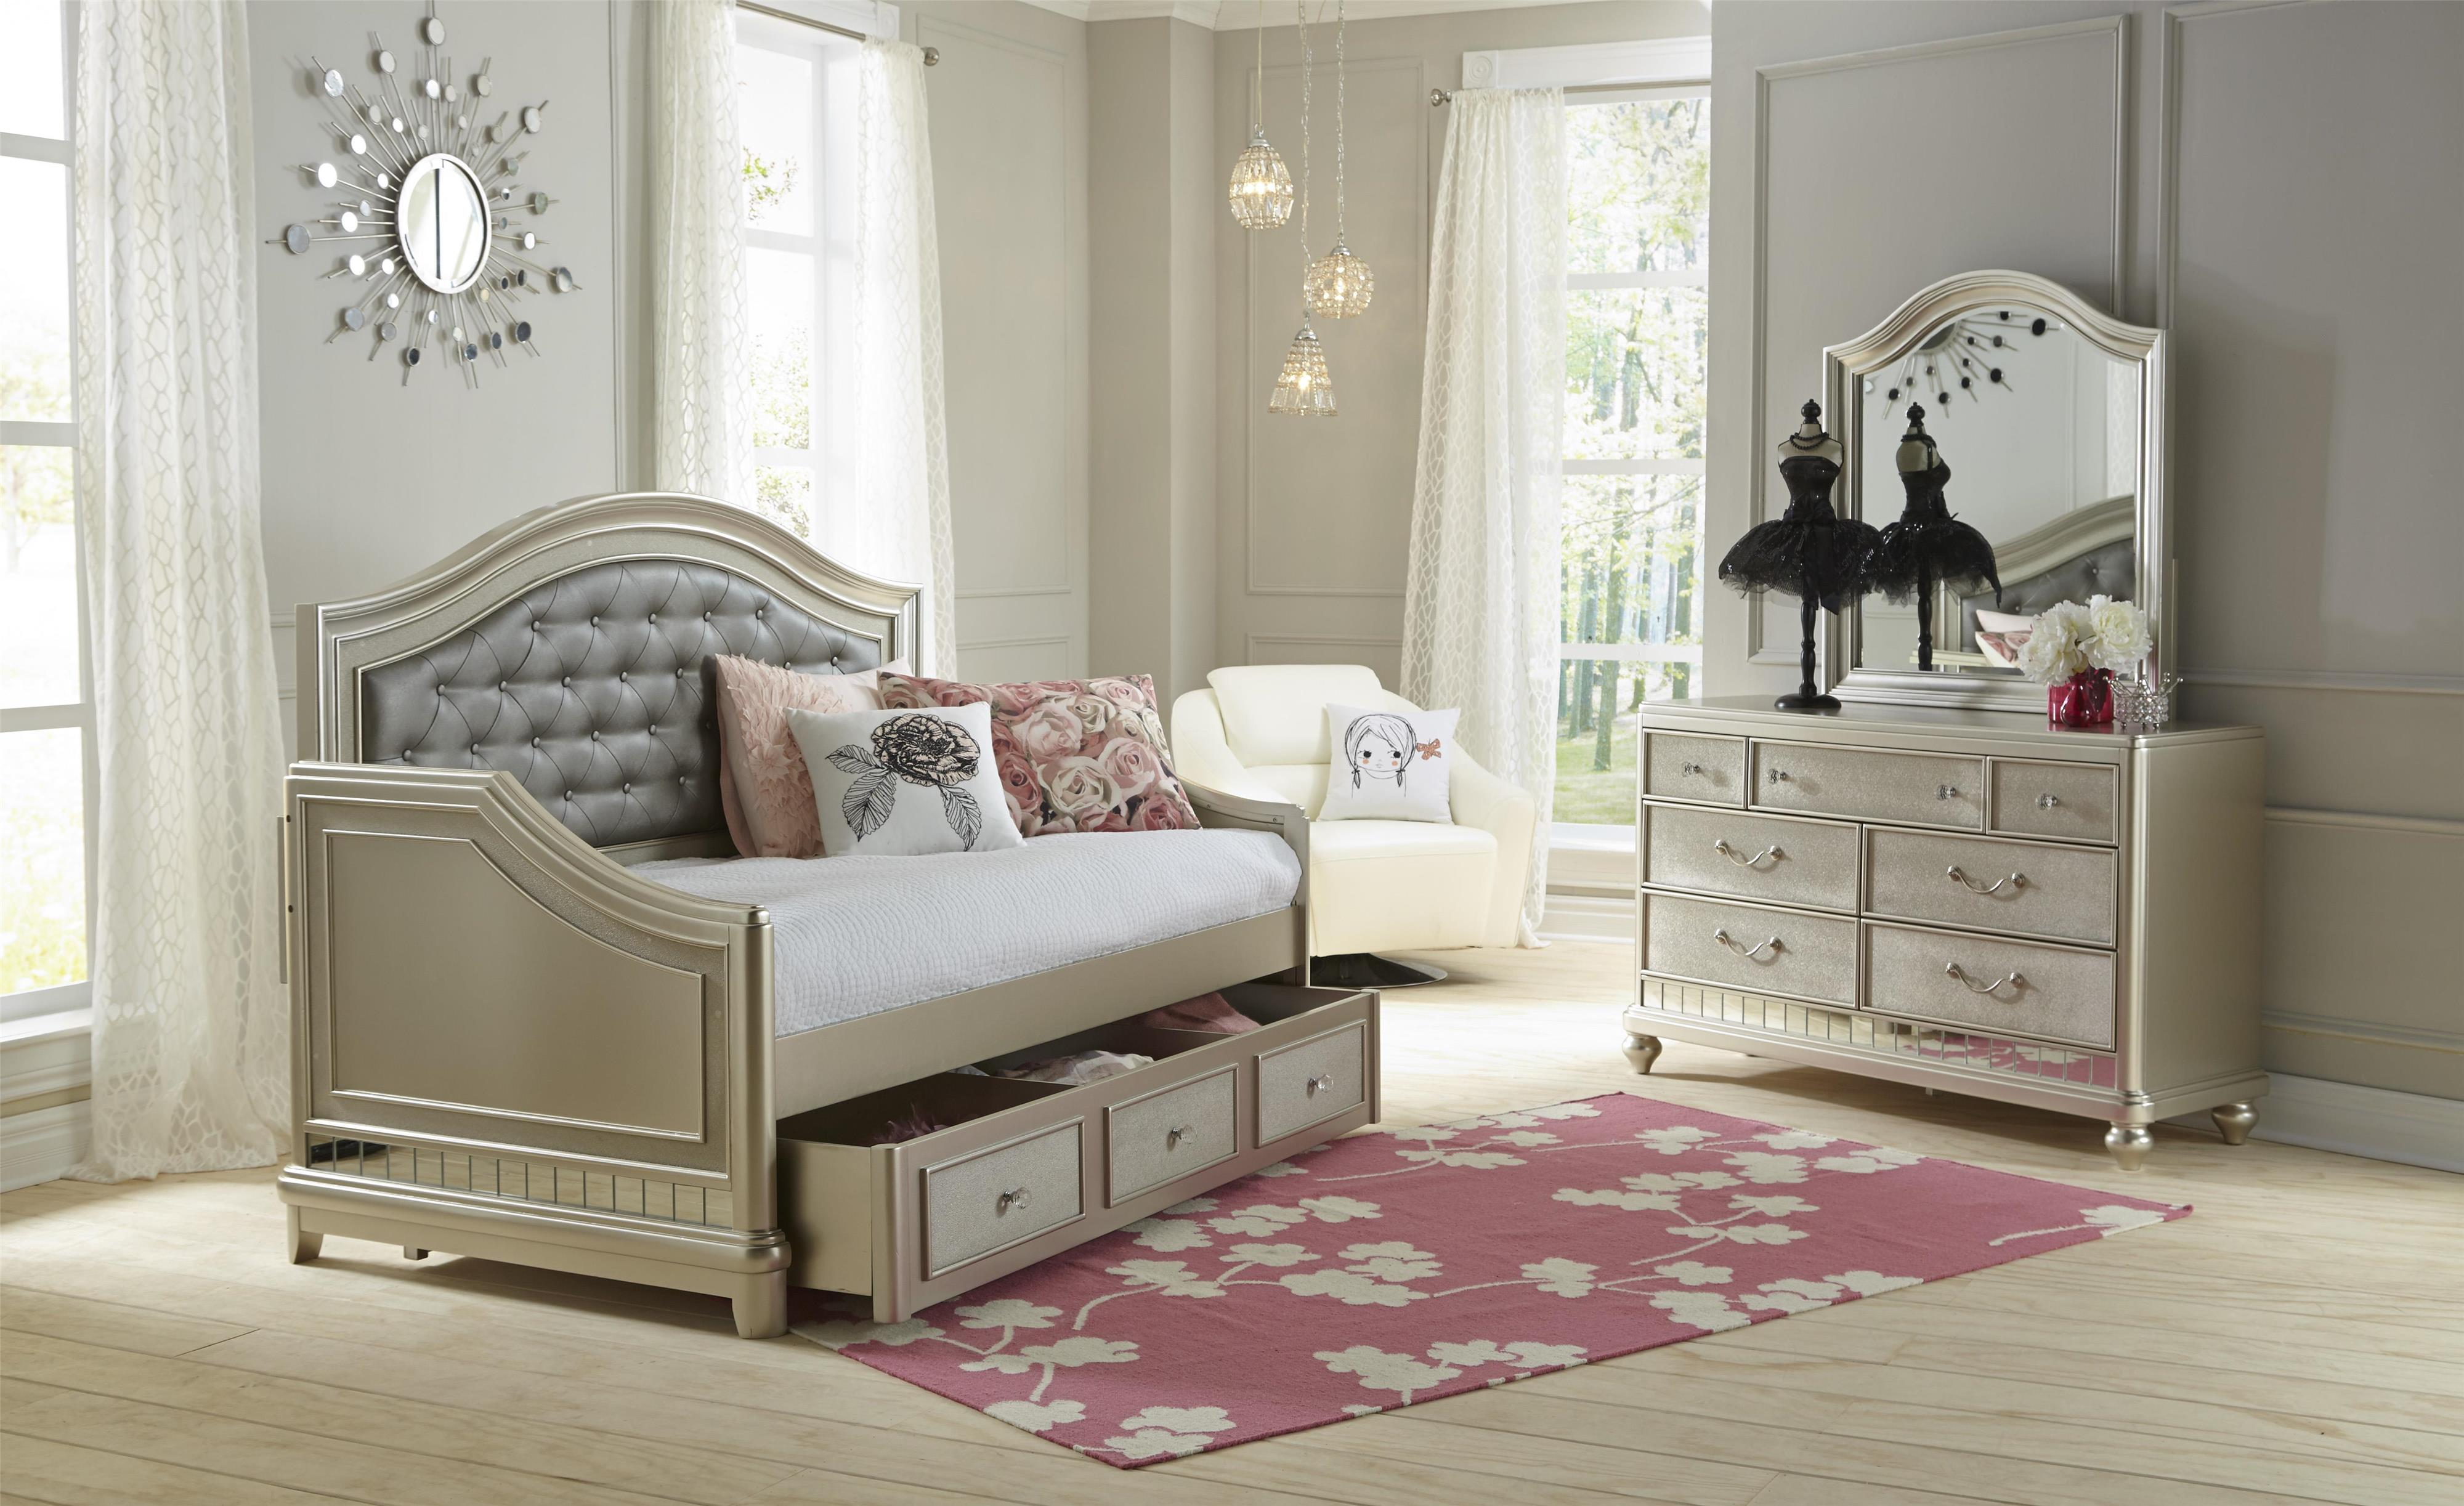 samuel lawrence lil diva tuffed headboard daybed furniture and mattress daybeds - Samuel Lawrence Furniture